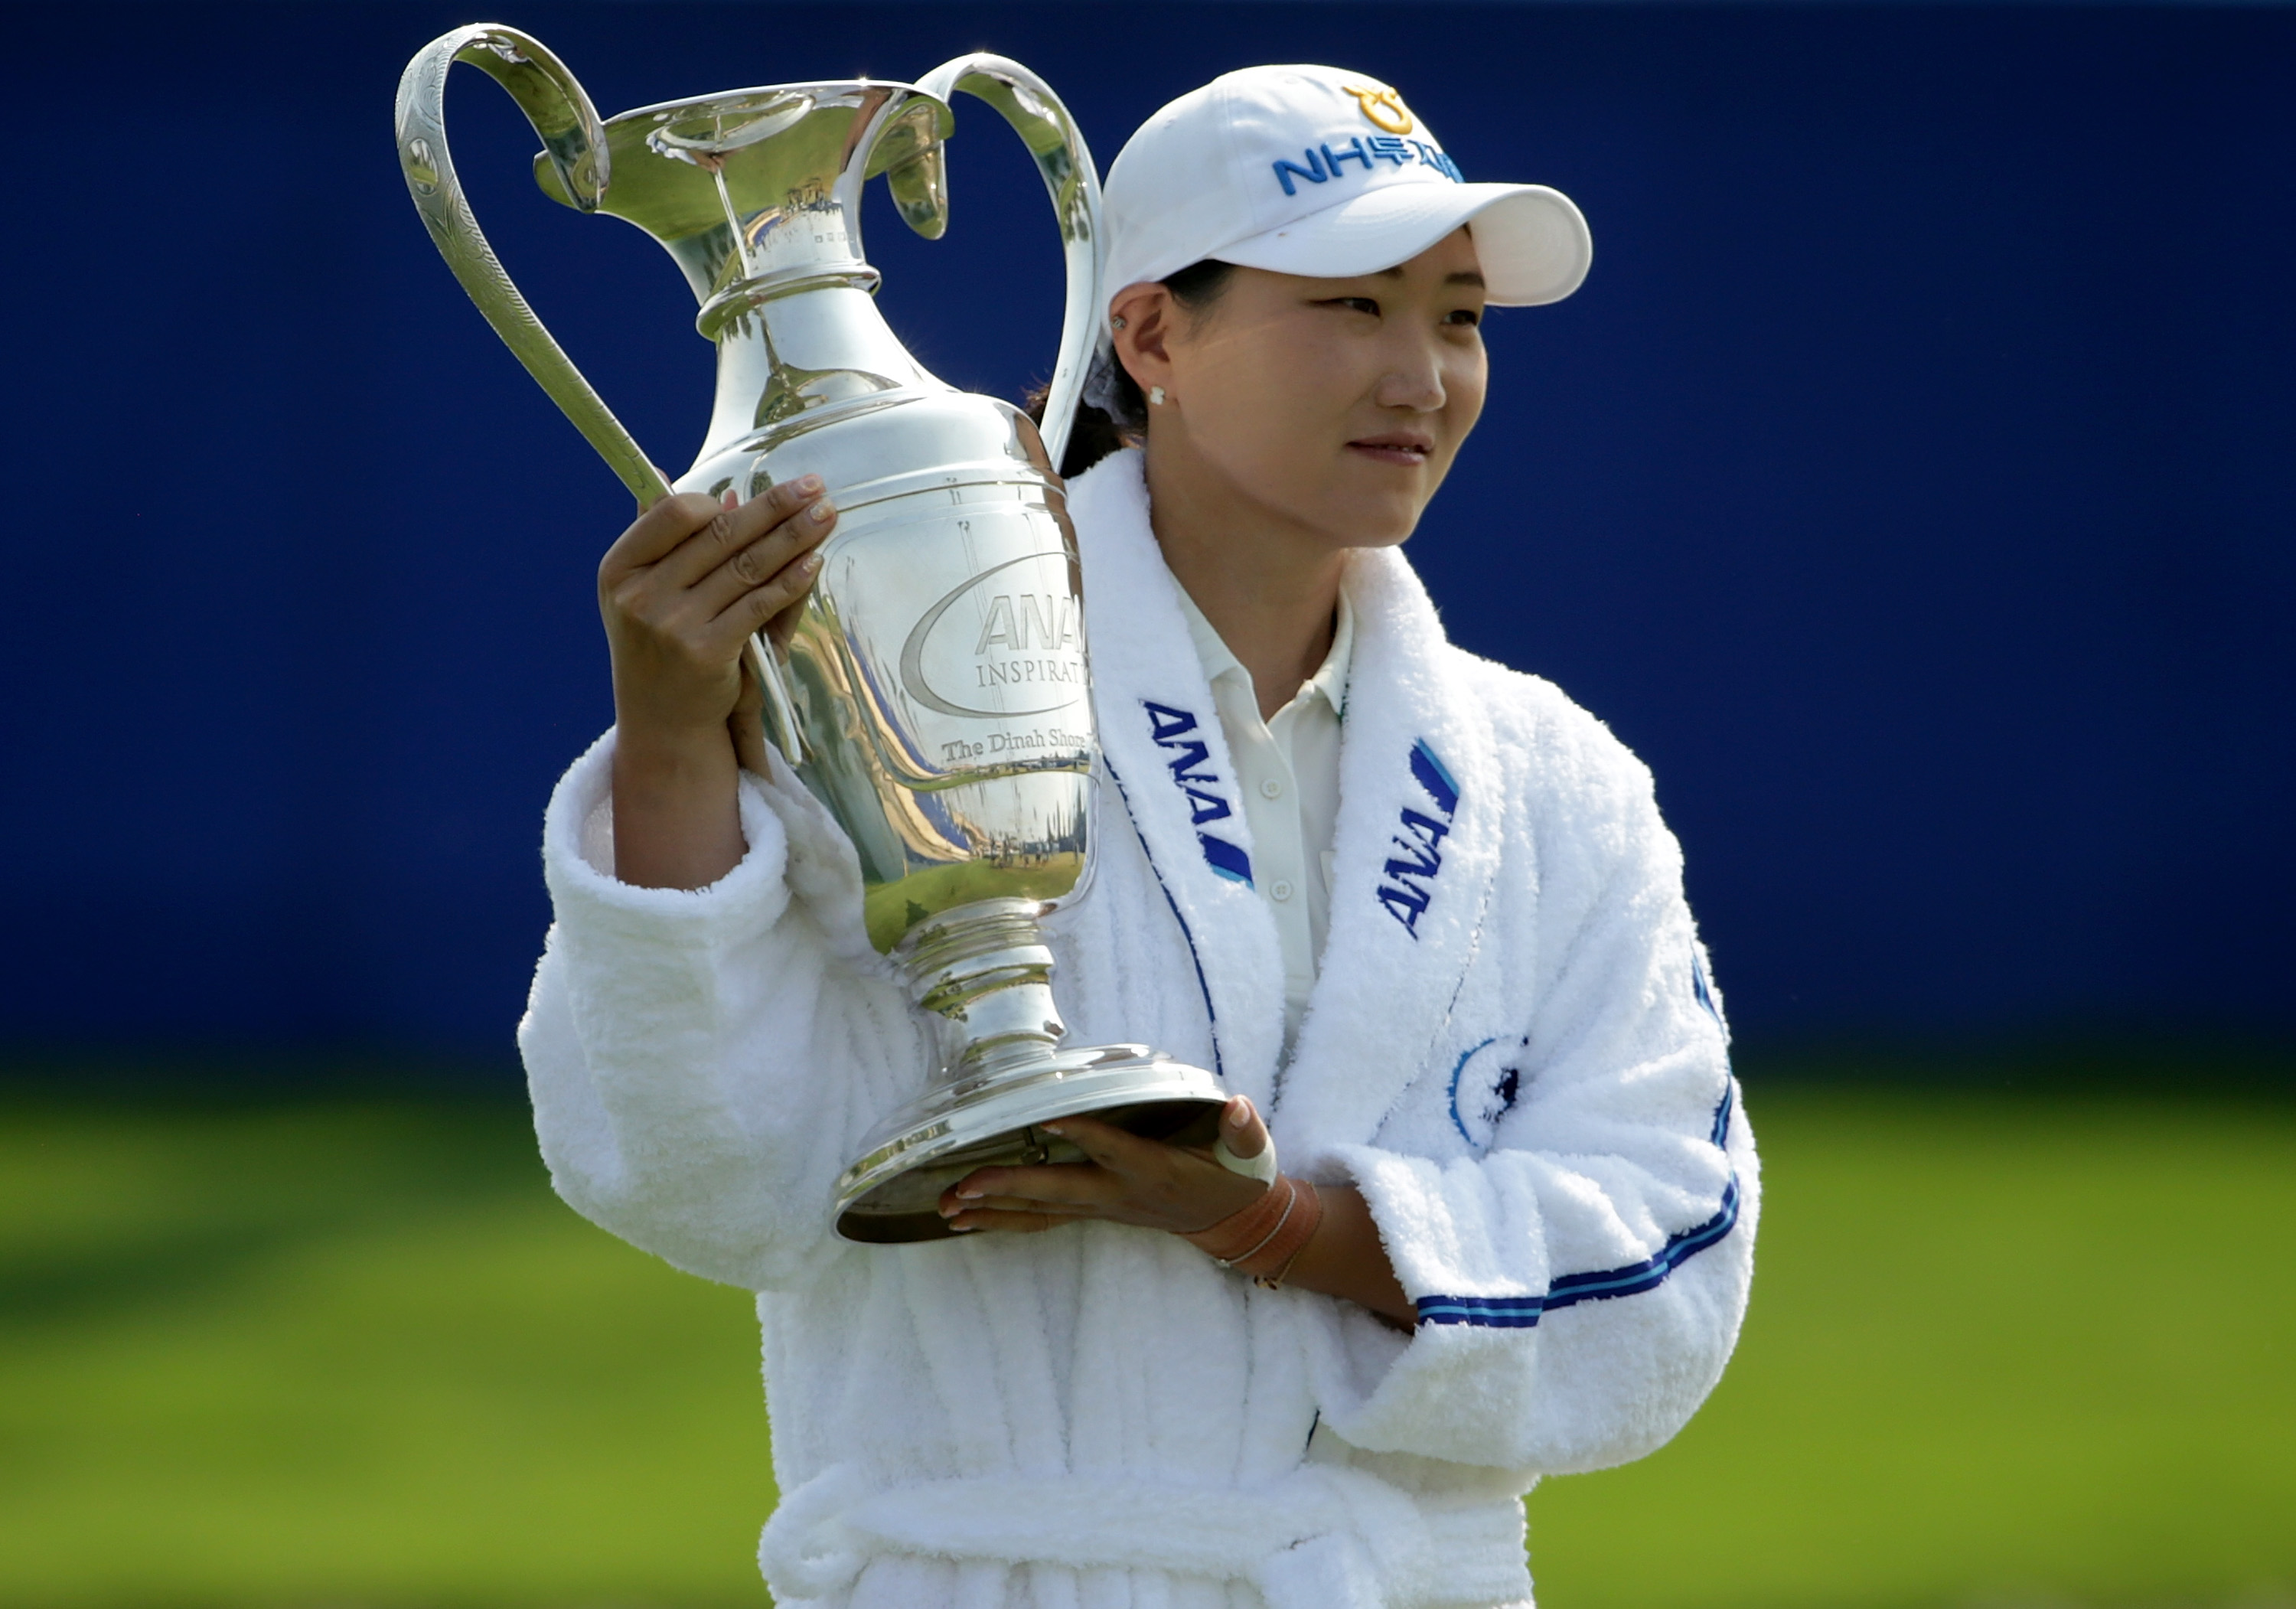 Mirim Lee wins first golf major with victory at the ANA Inspiration